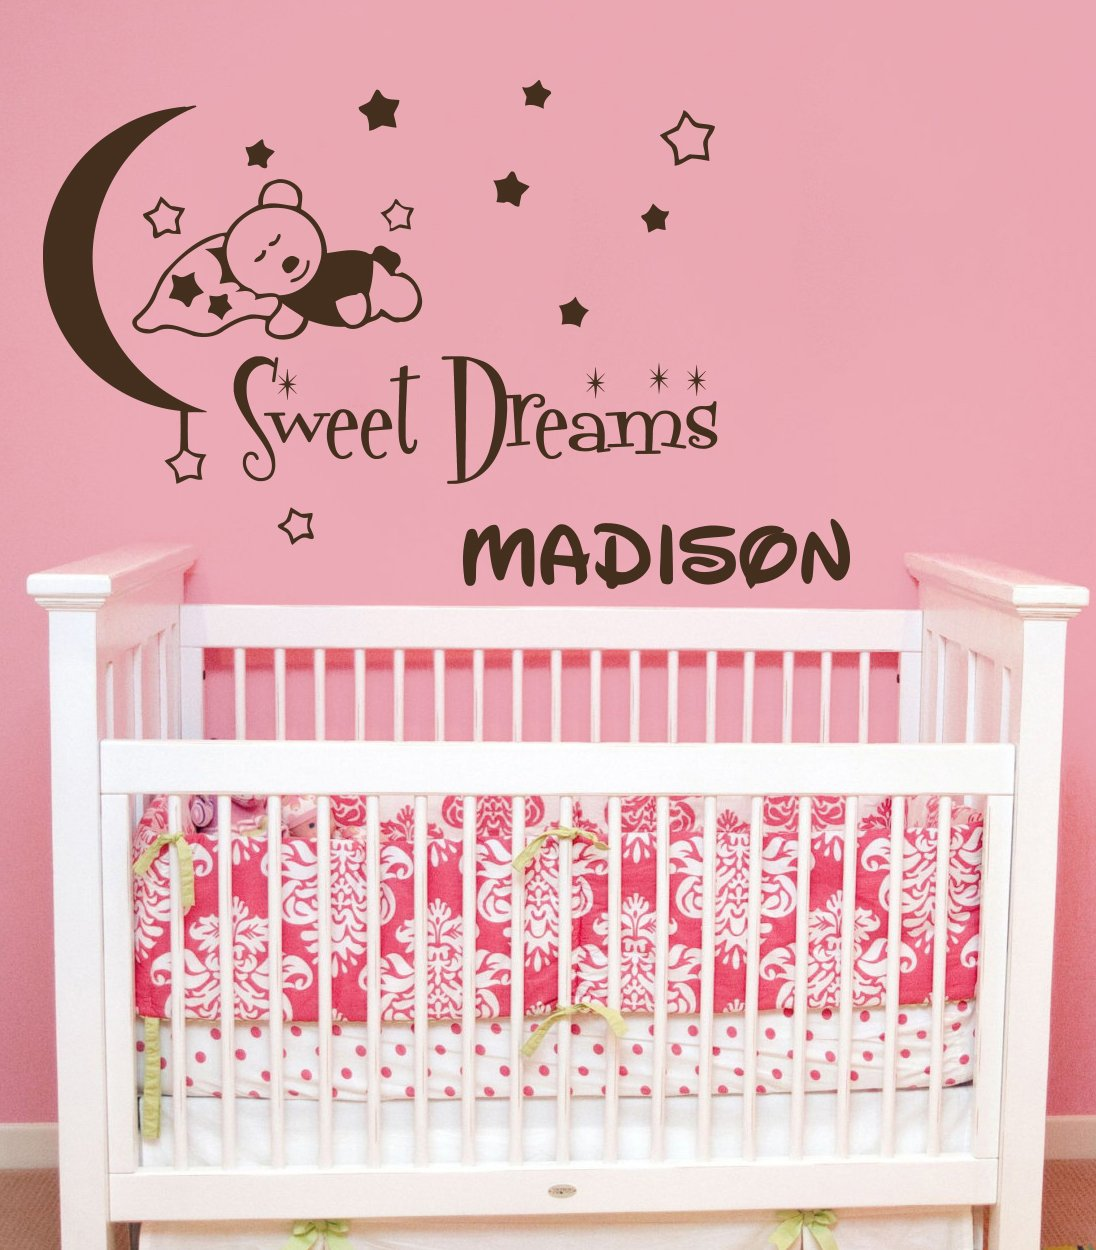 wall decals custom personalized name teddy bear moon and stars wall decals custom personalized name teddy bear moon and stars sweet dreams children gift bedroom nursery boy girl vinyl sticker wall decor murals baby wall